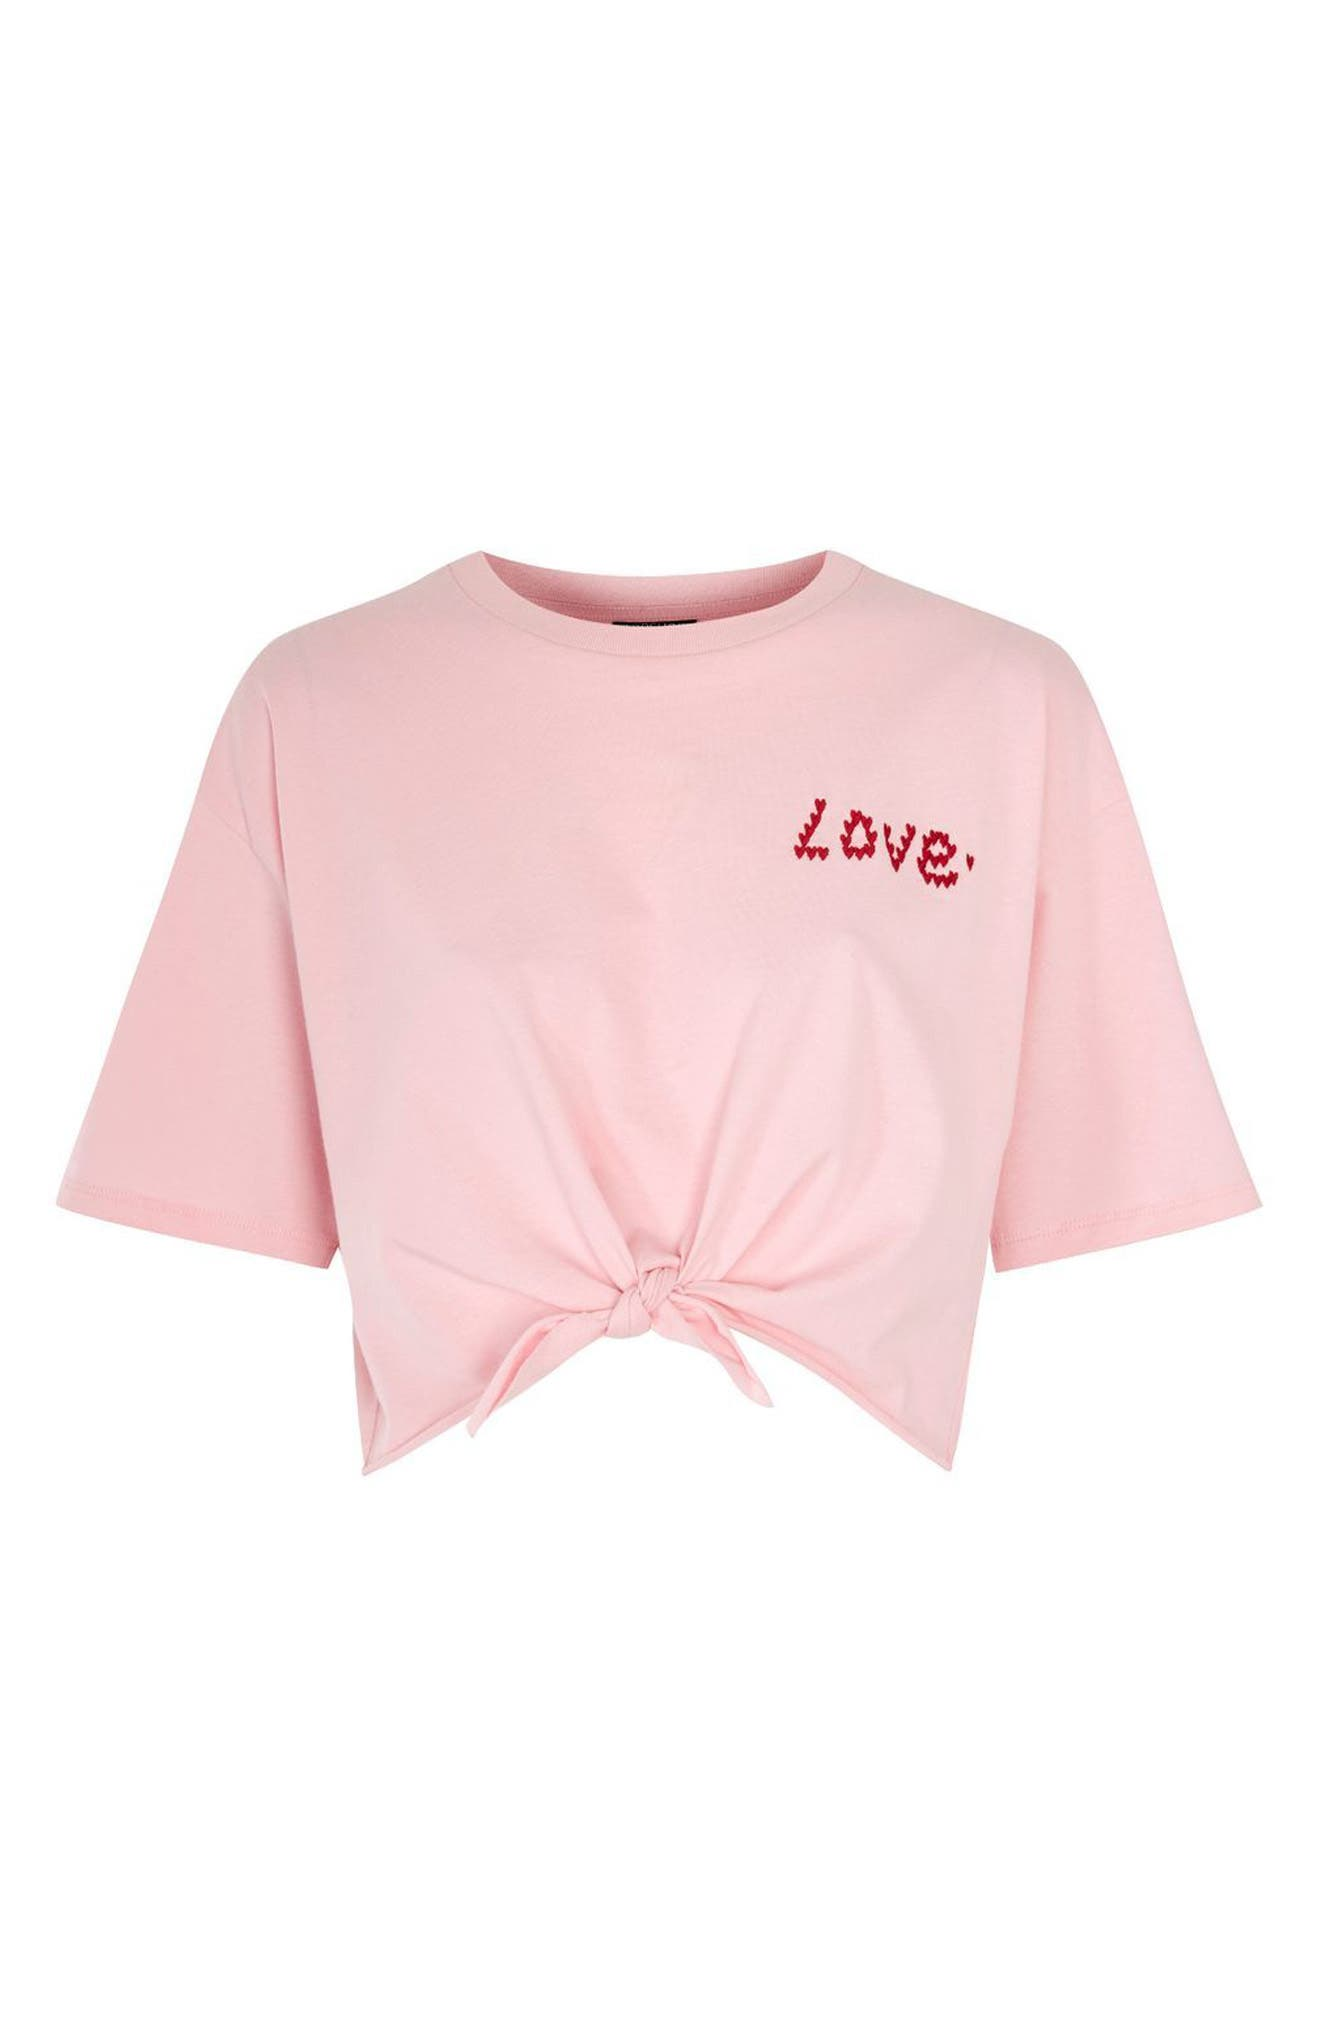 Knot Front Love T-Shirt,                             Alternate thumbnail 4, color,                             Pink